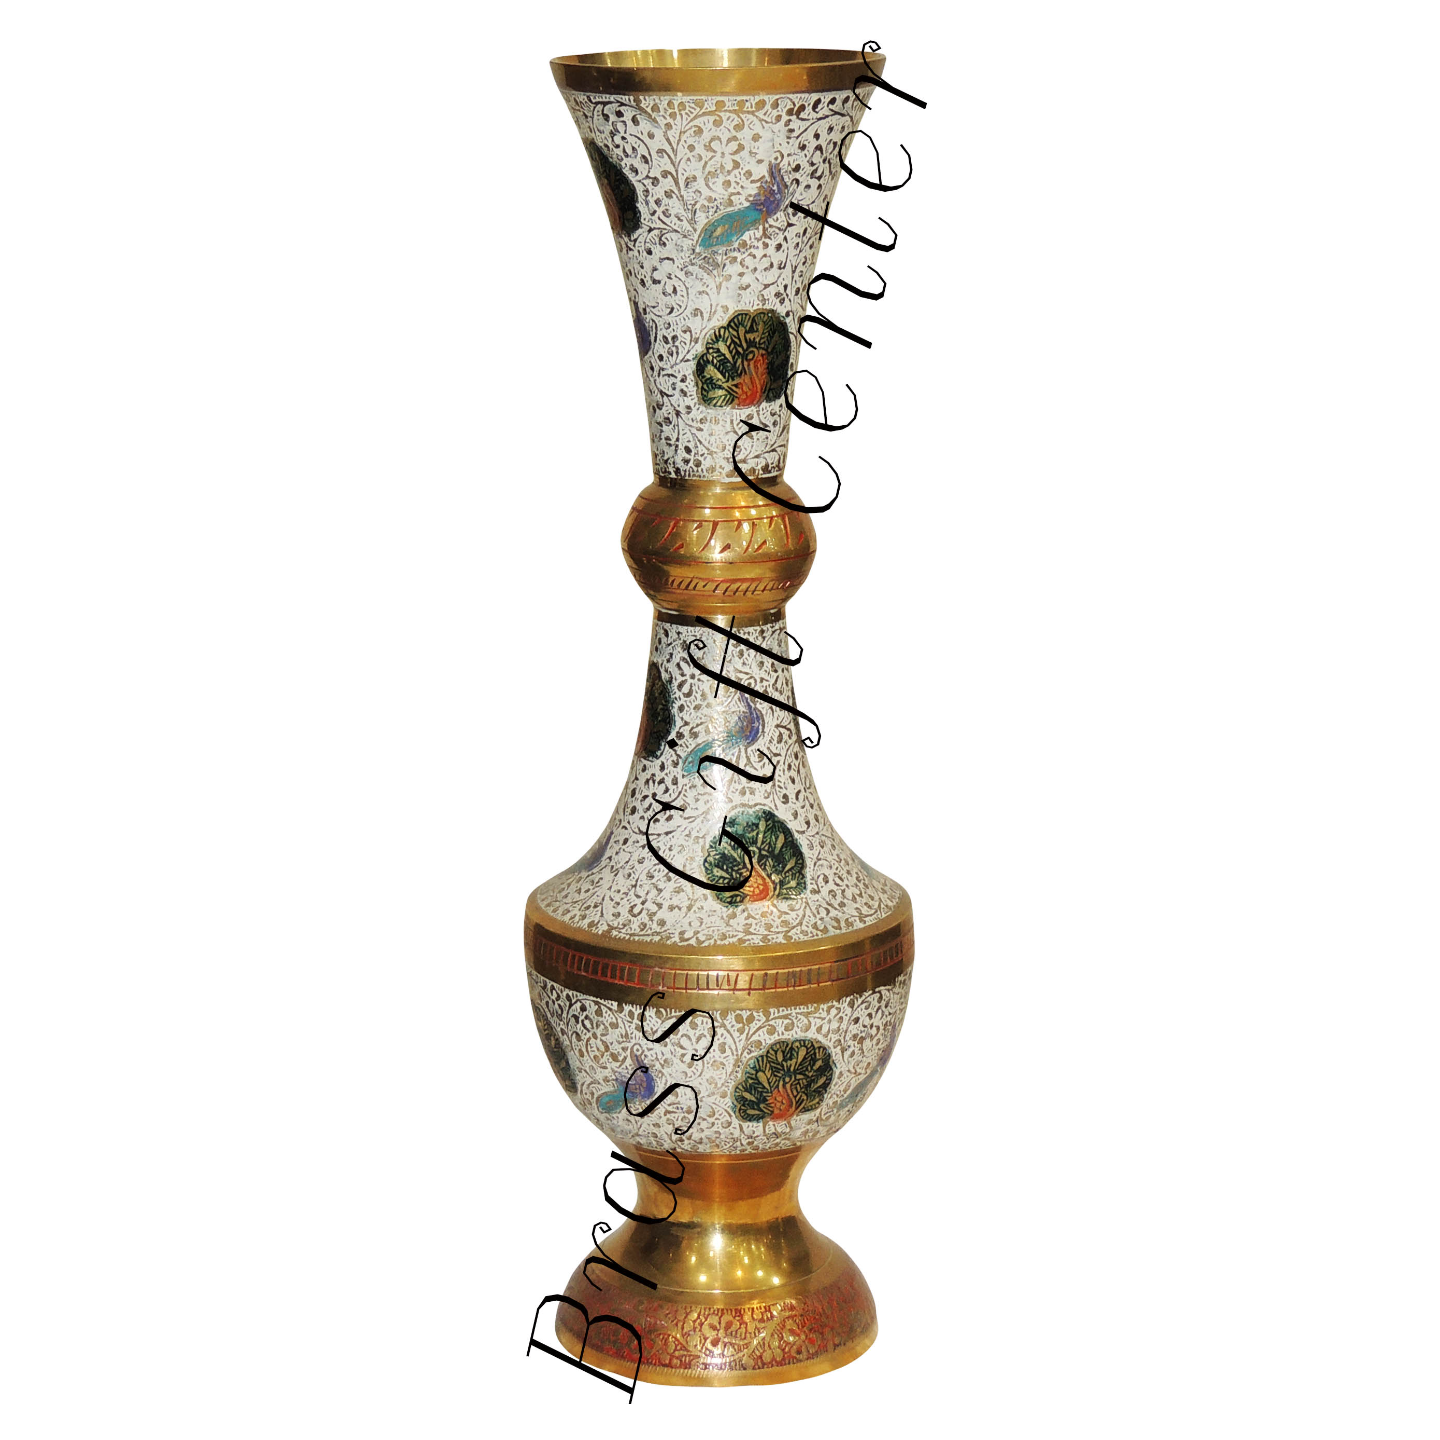 Brass Coloured Flower Vase with handwork - 5514Inch  F186